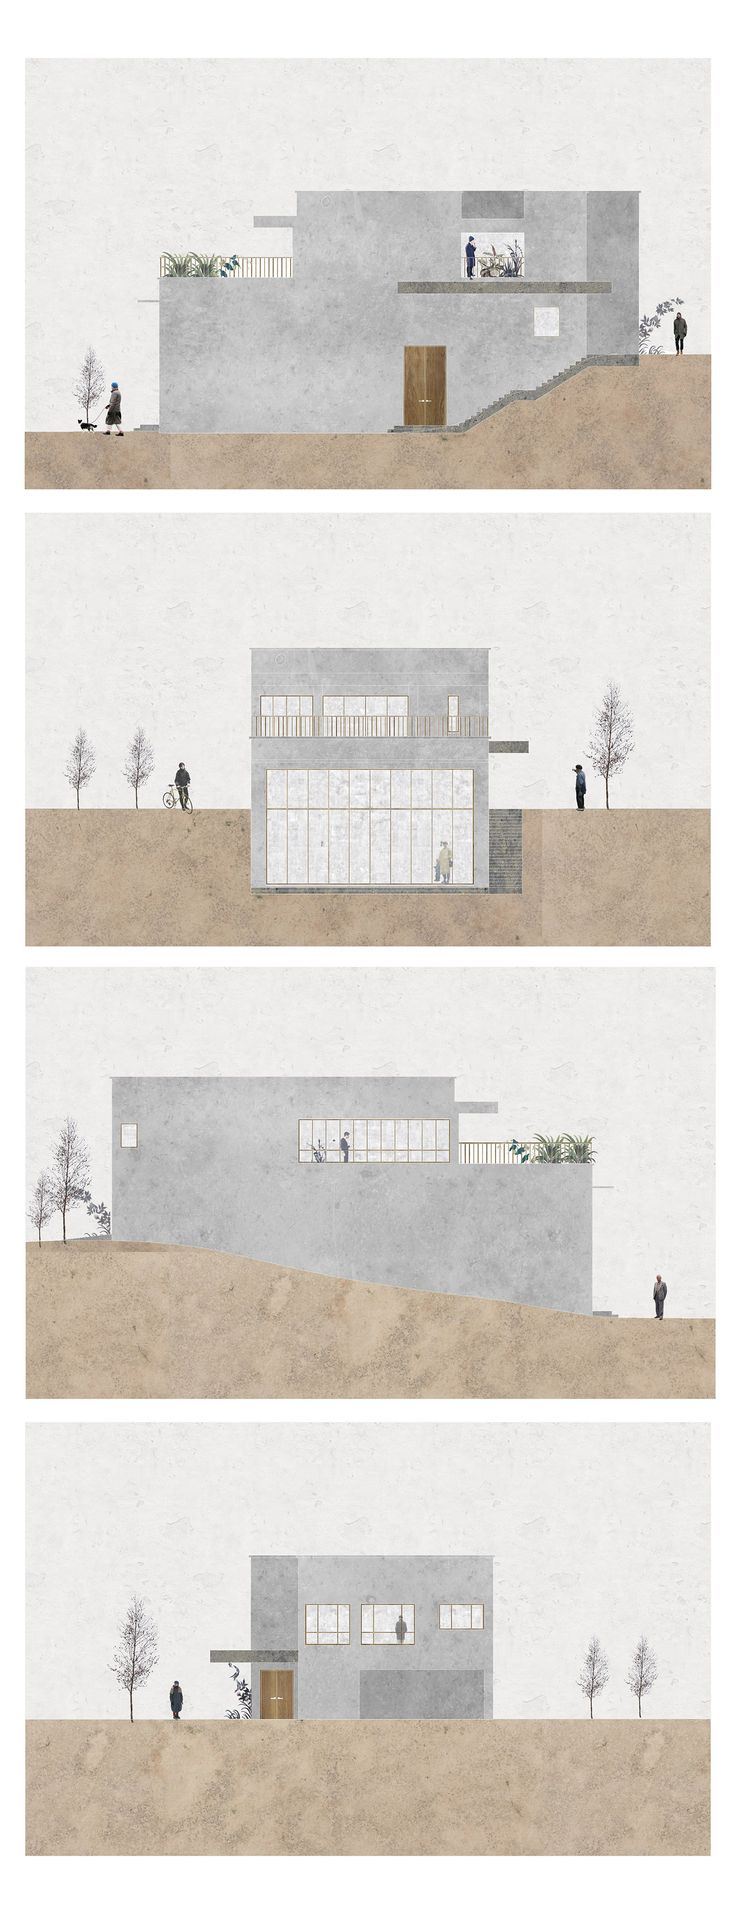 Mengyao Han - Finding A Balance, Exploring Architectural Narratives